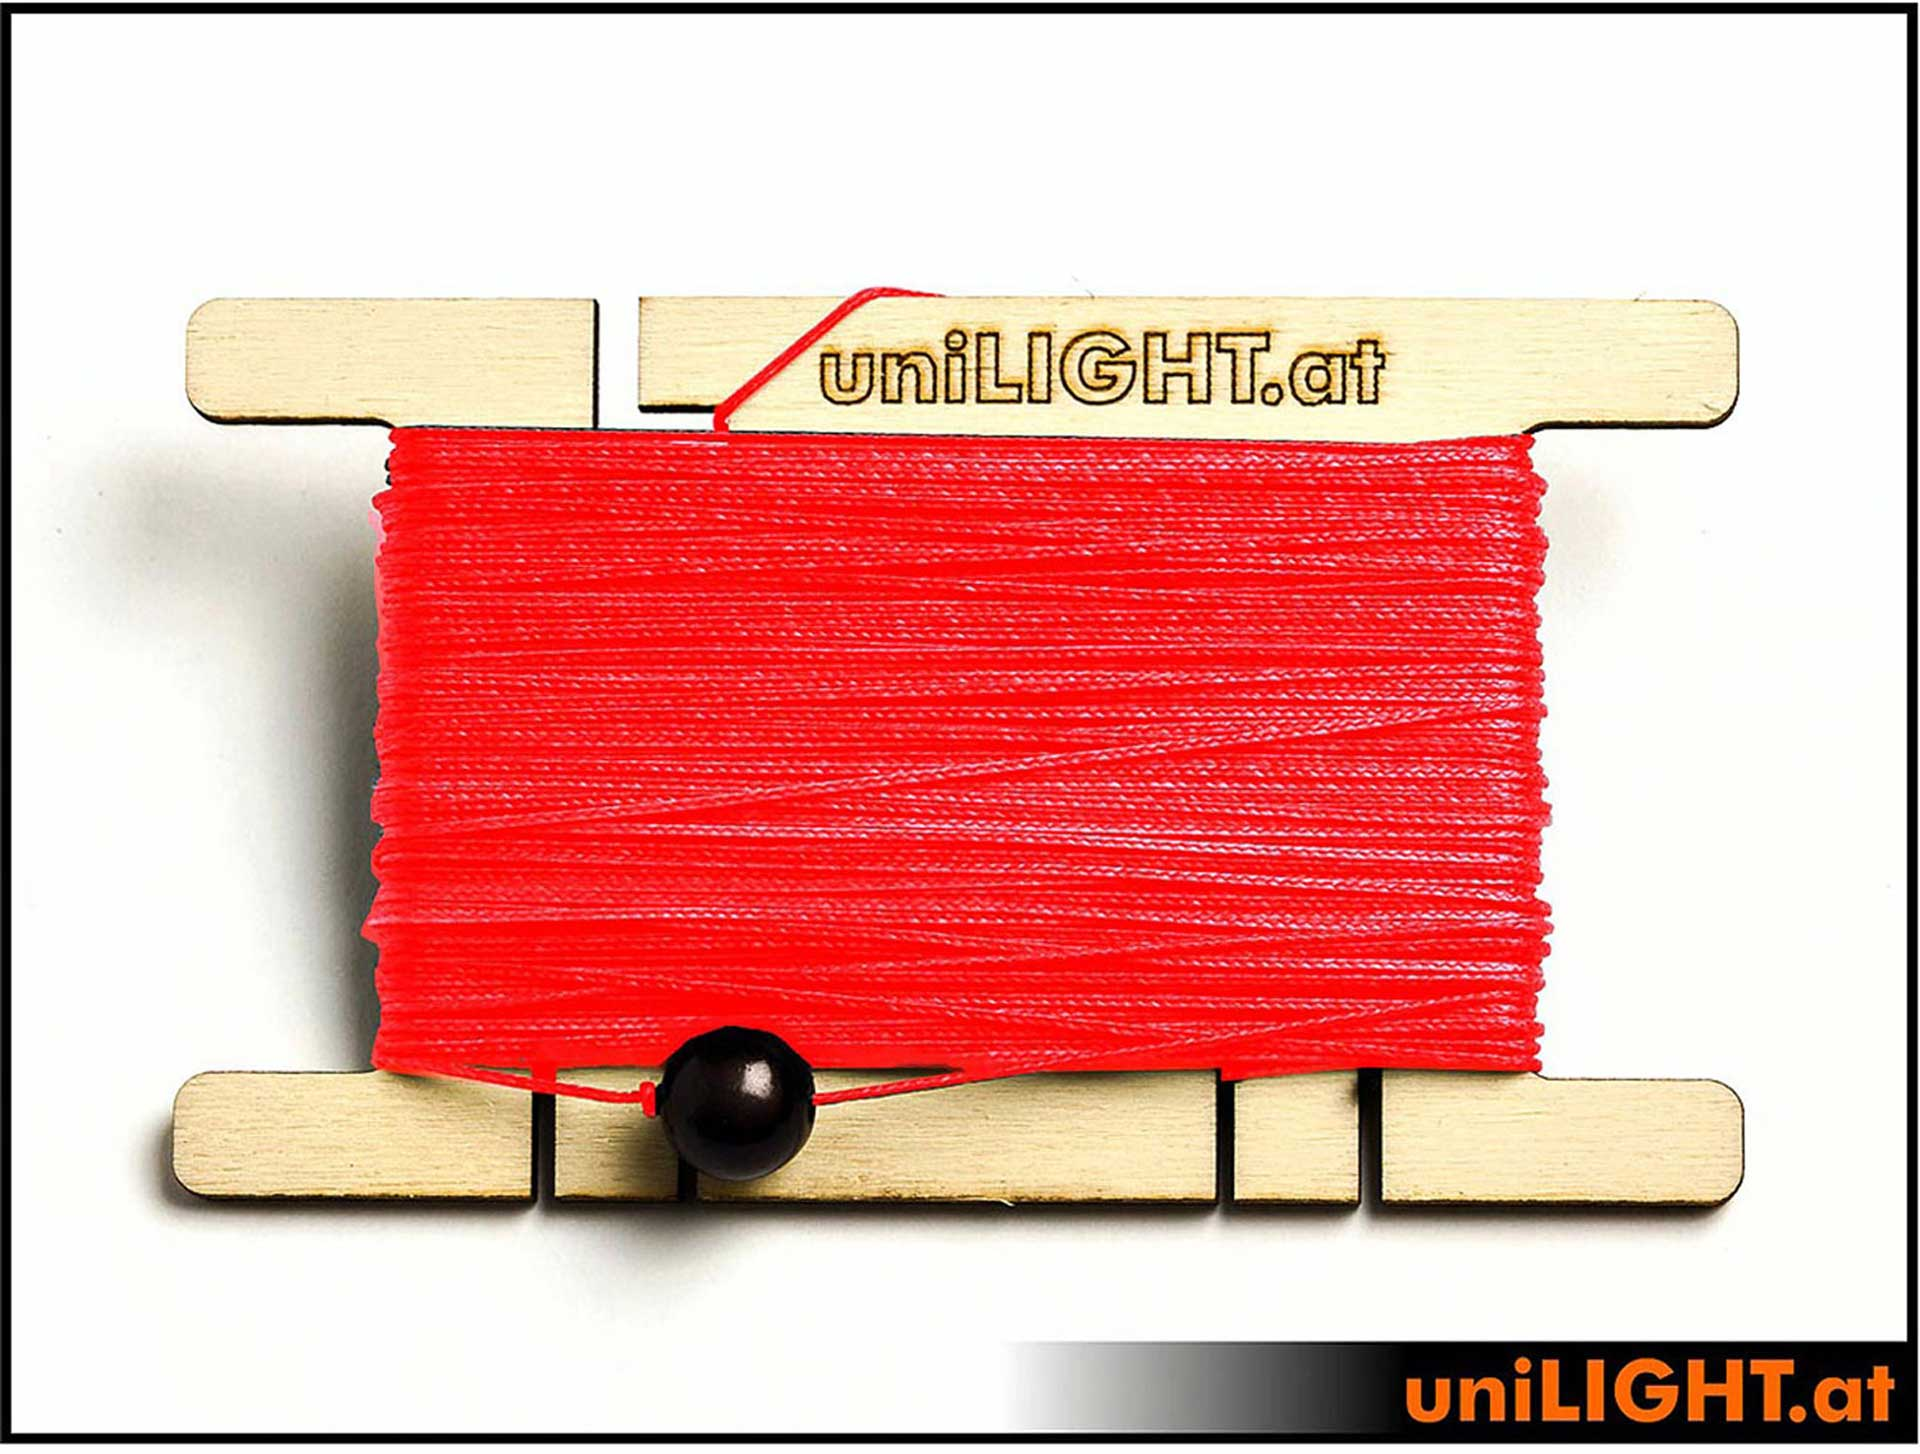 UNILIGHT DYNAMIX ROPE 0.8MM, 30M, 68DAN DIVERSE COLORS